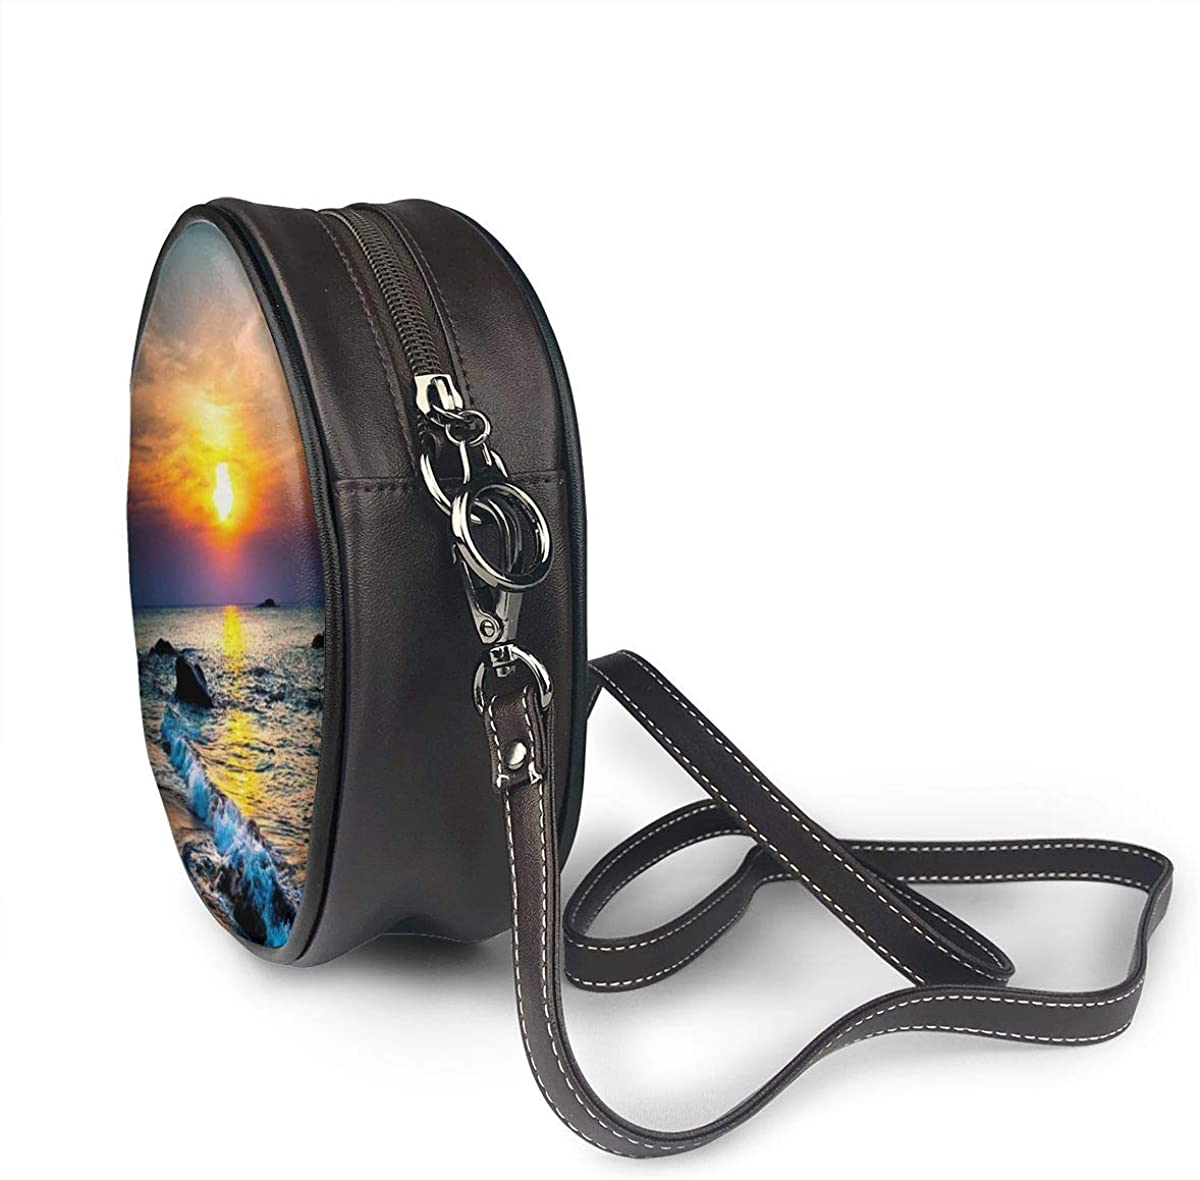 Last Sun Rays Of Over The Sea Waves Printed Women Leather Crossbody Round Bag Girls Cell Phone Purse Handbags Amazon Com 09g/tf60sn, wire harness, large connector. amazon com